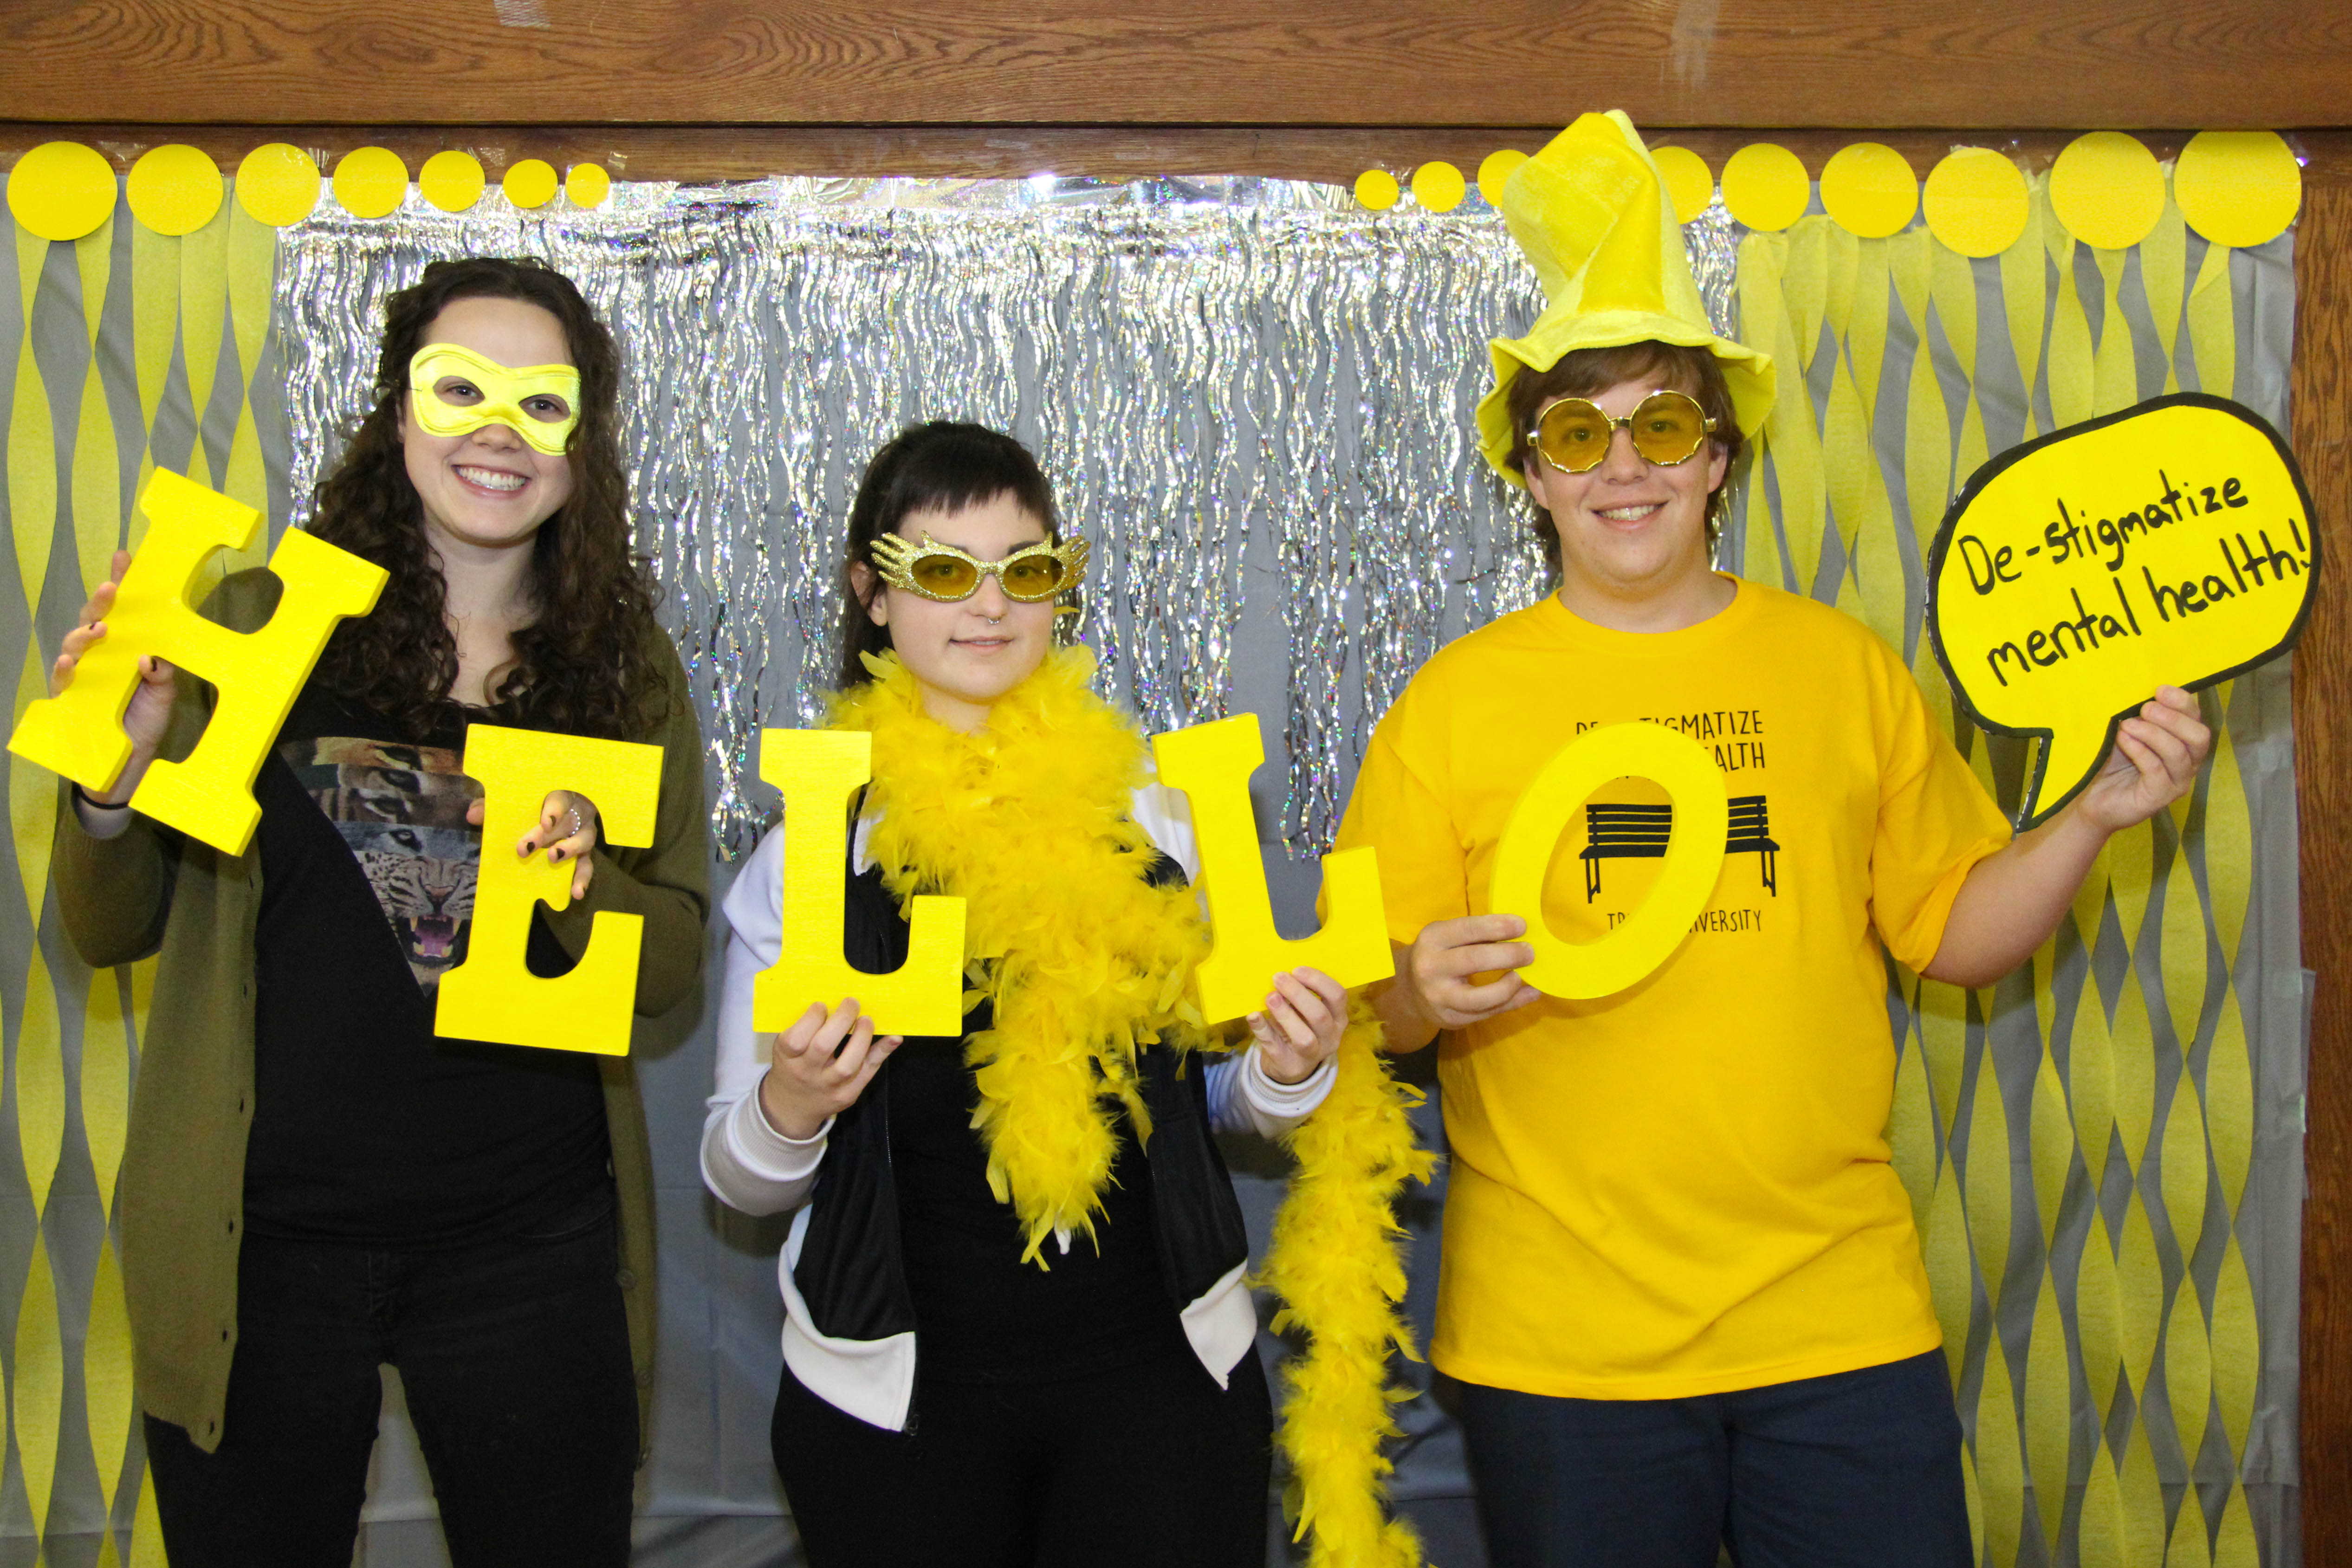 #YellowIsForHello The Friendship Bench Trent University